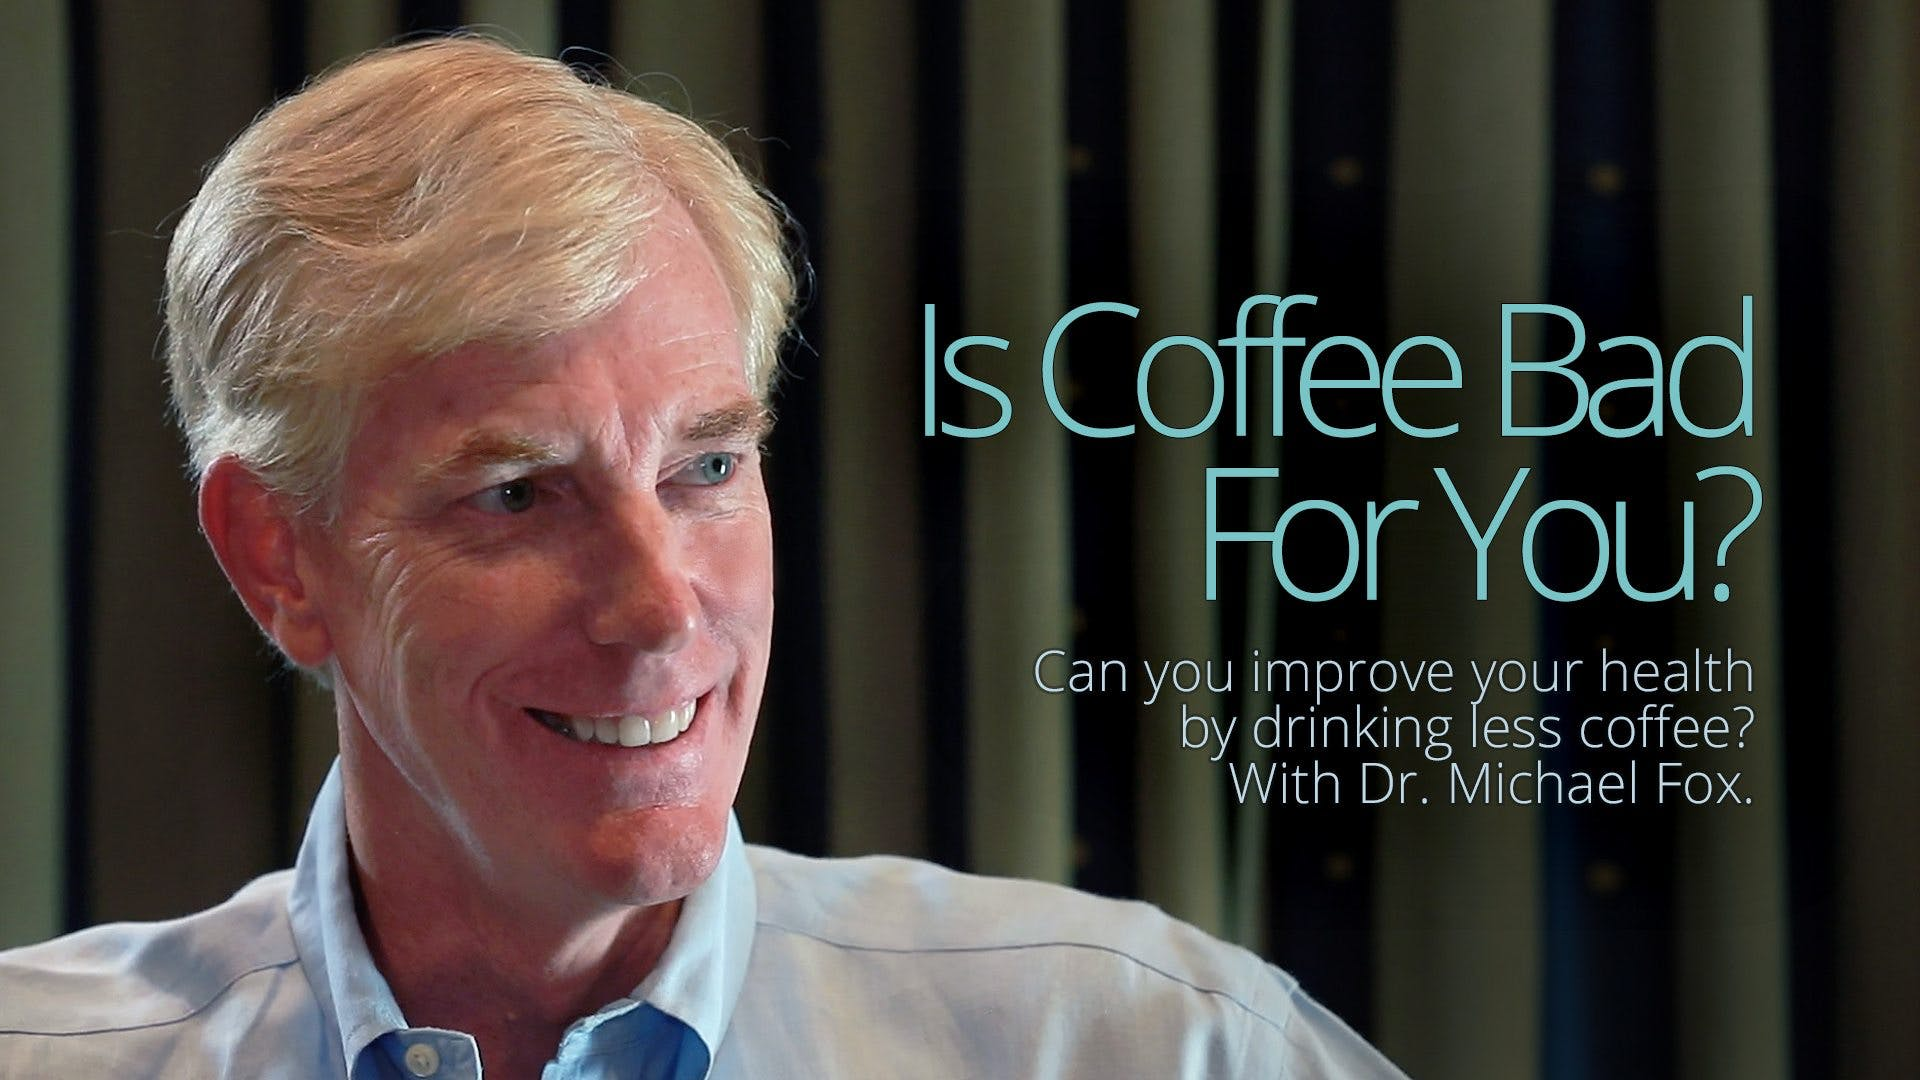 Is Coffee Bad for You?